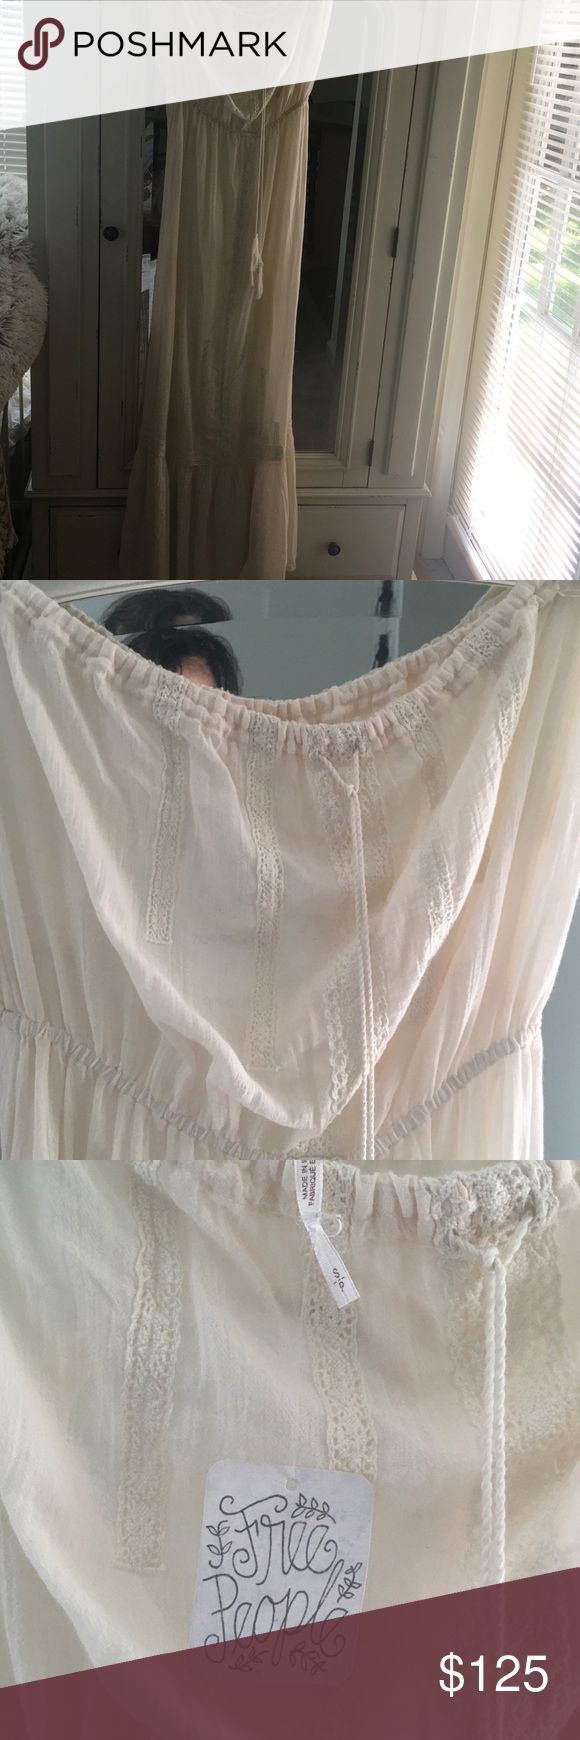 Free People Maxi Dress Strapless Free People Maxi Dress NWT - long and lovely drawstring on the front bodice - beautiful ivory lace detail. Free People Dresses Maxi